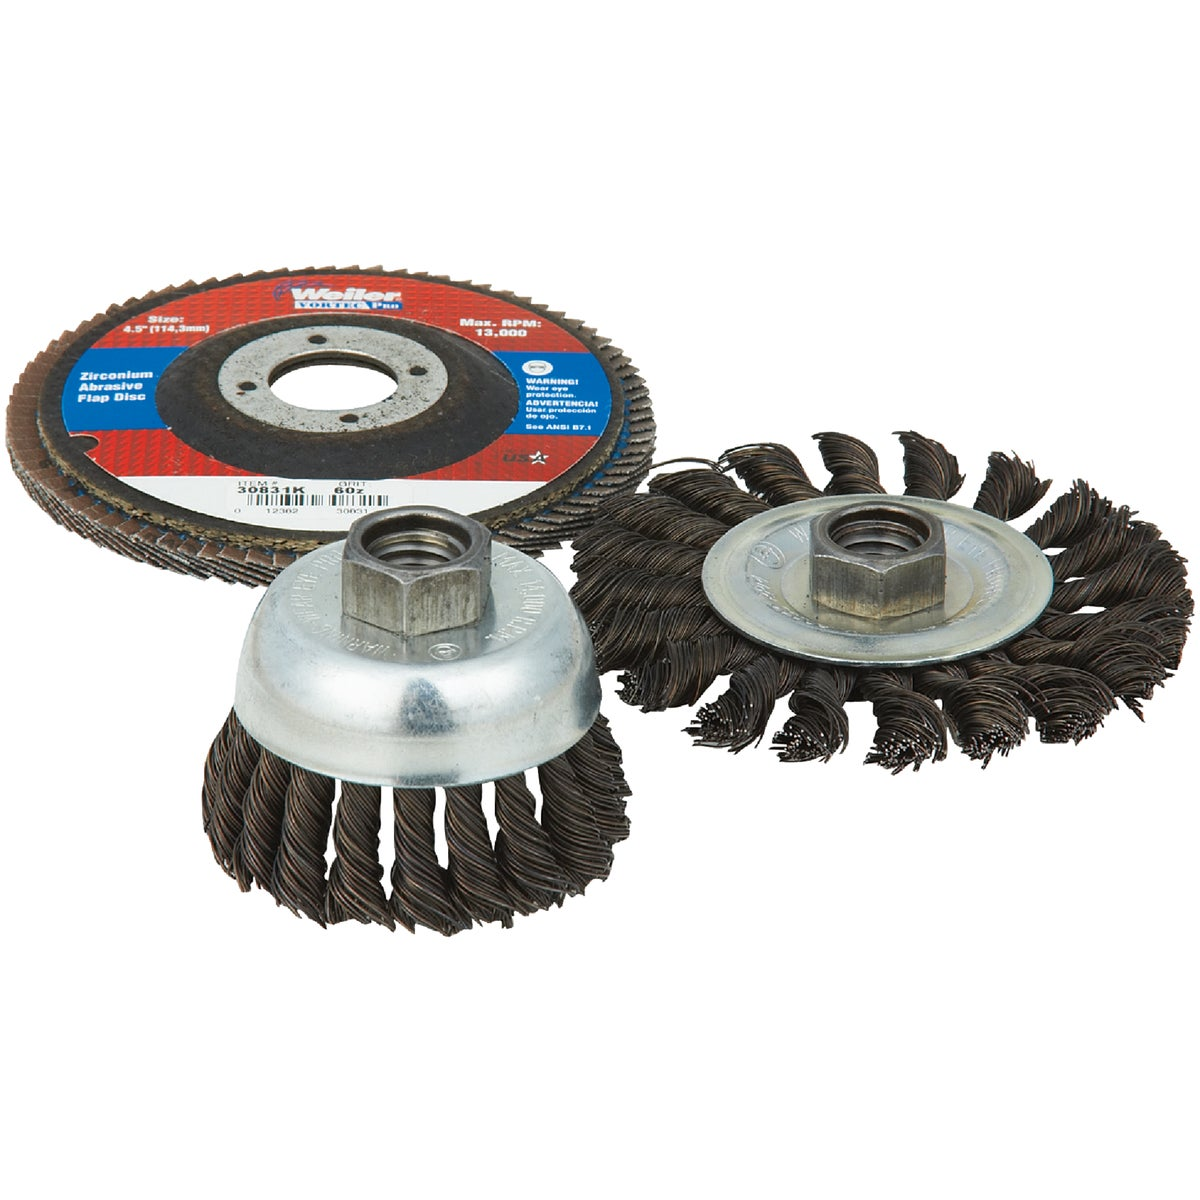 3PC MINI GRINDER KIT